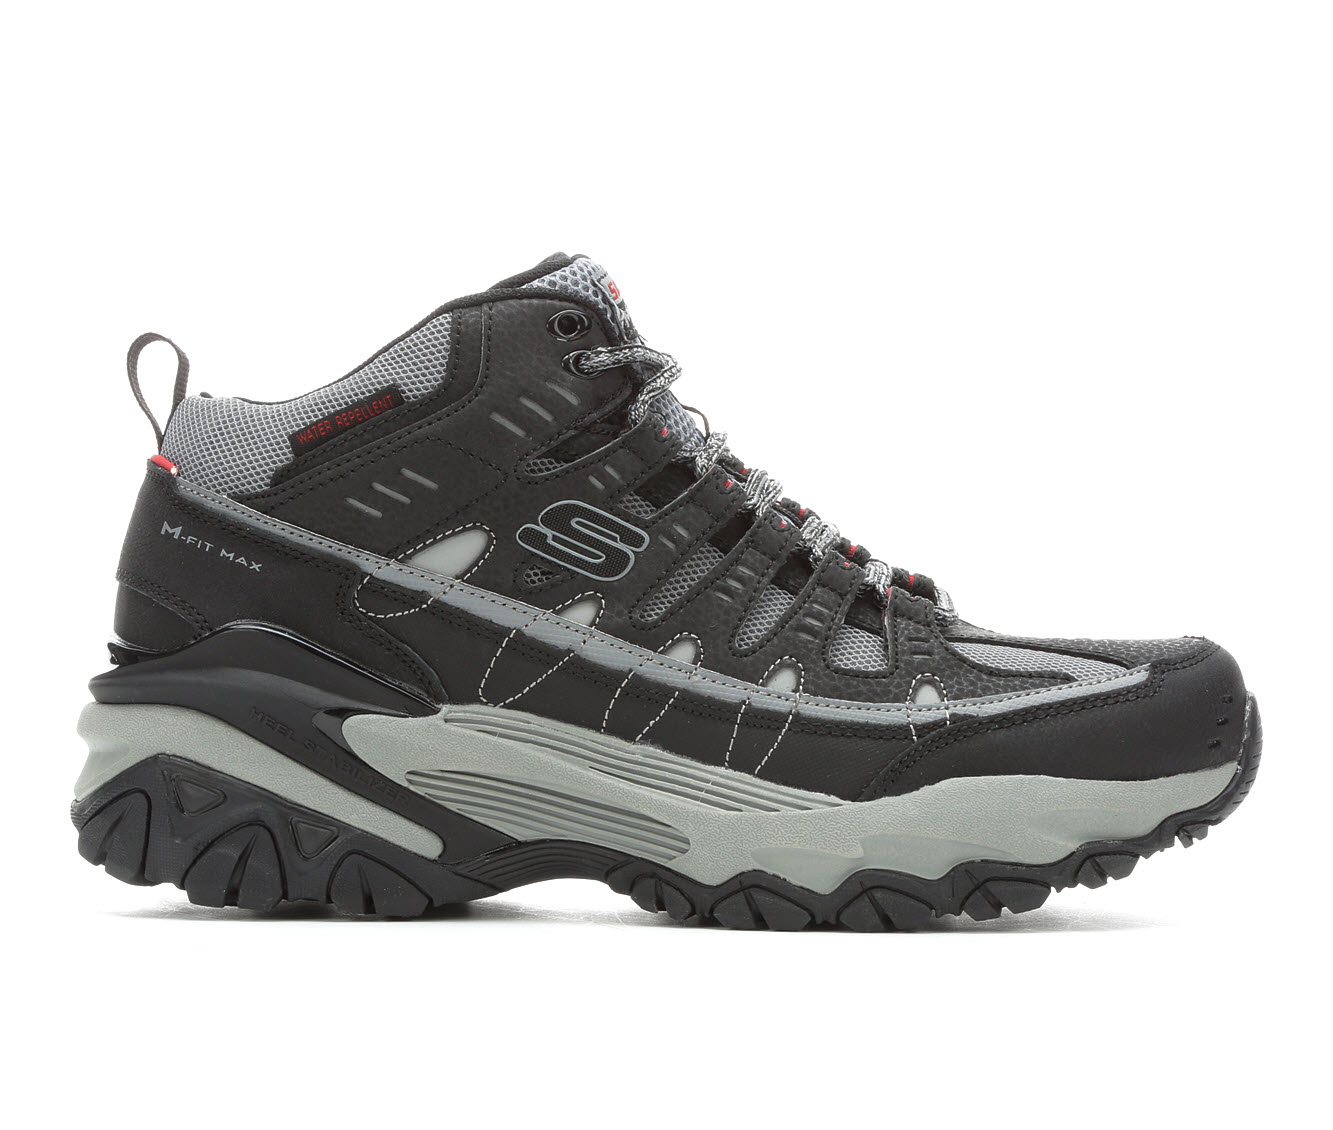 Skechers Max 51967 Men's Boots (Black Leather)